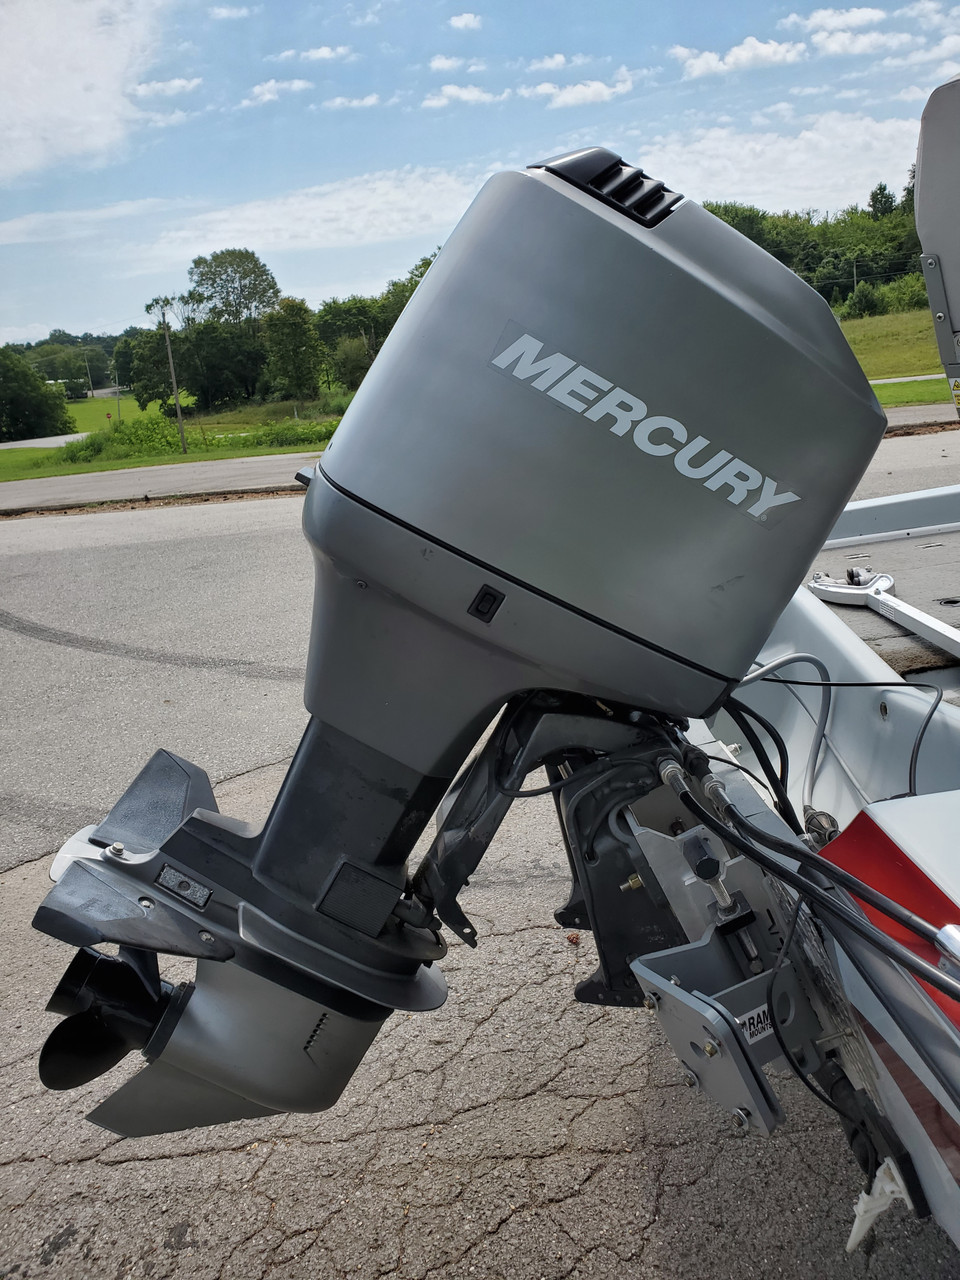 1991 Bumble Bee 18.5' Fiberglass Boat with 1997 Mercury 115 HP Outboard Motor and Trailer